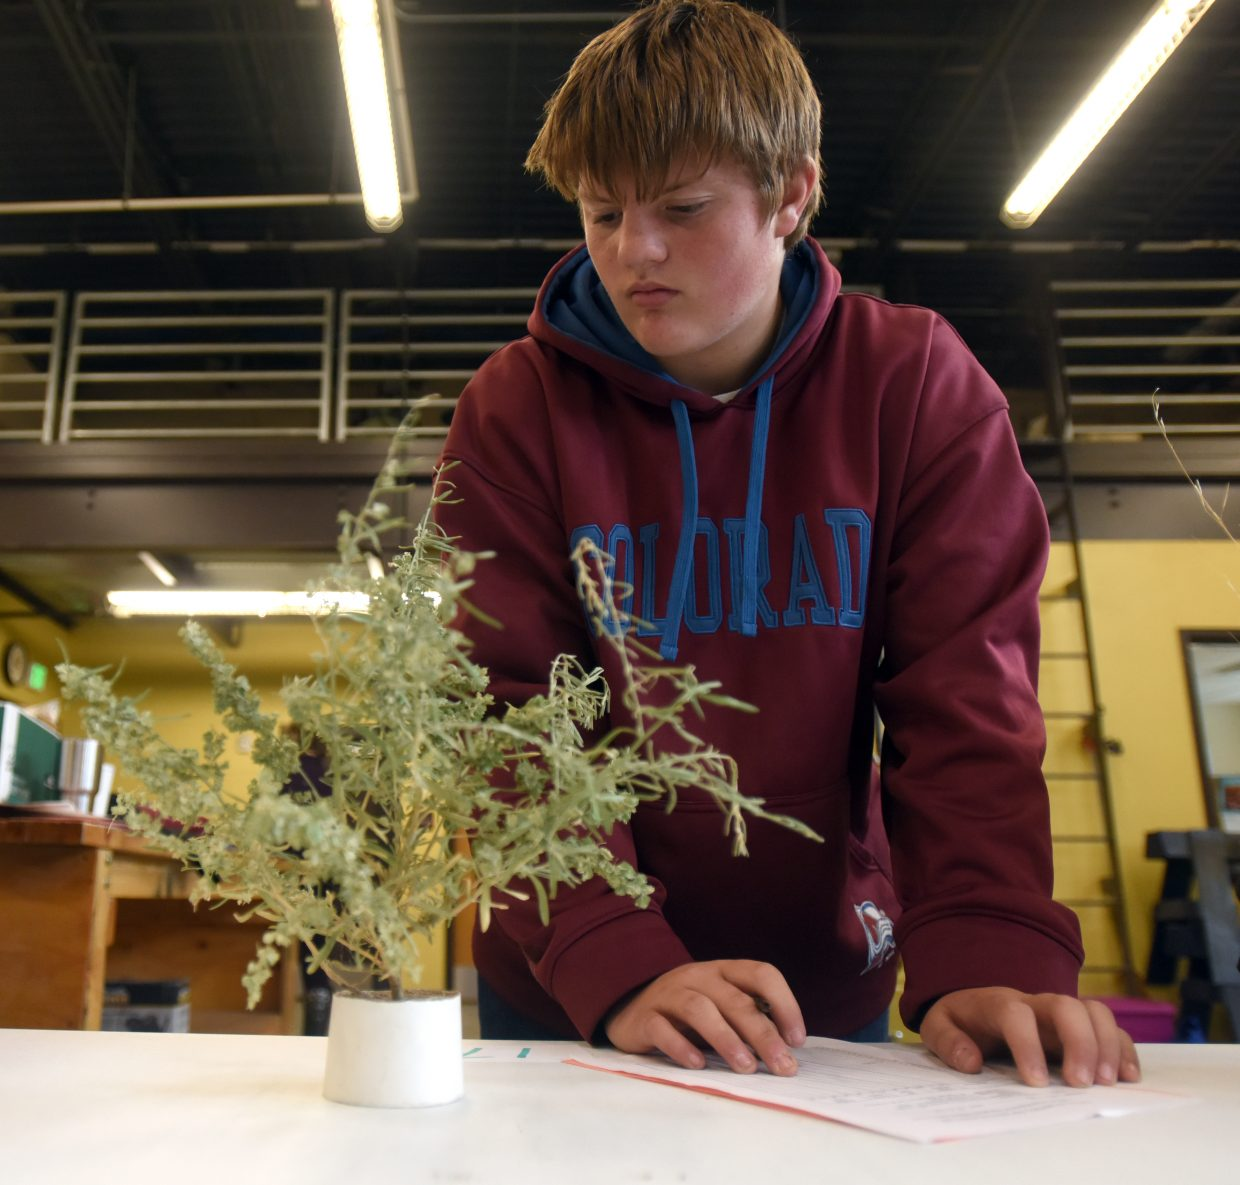 Cody Legg, 15, glances down at one of the plants he is supposed to identify during the rangeland contest at Prairie School in New Raymer, Colo.